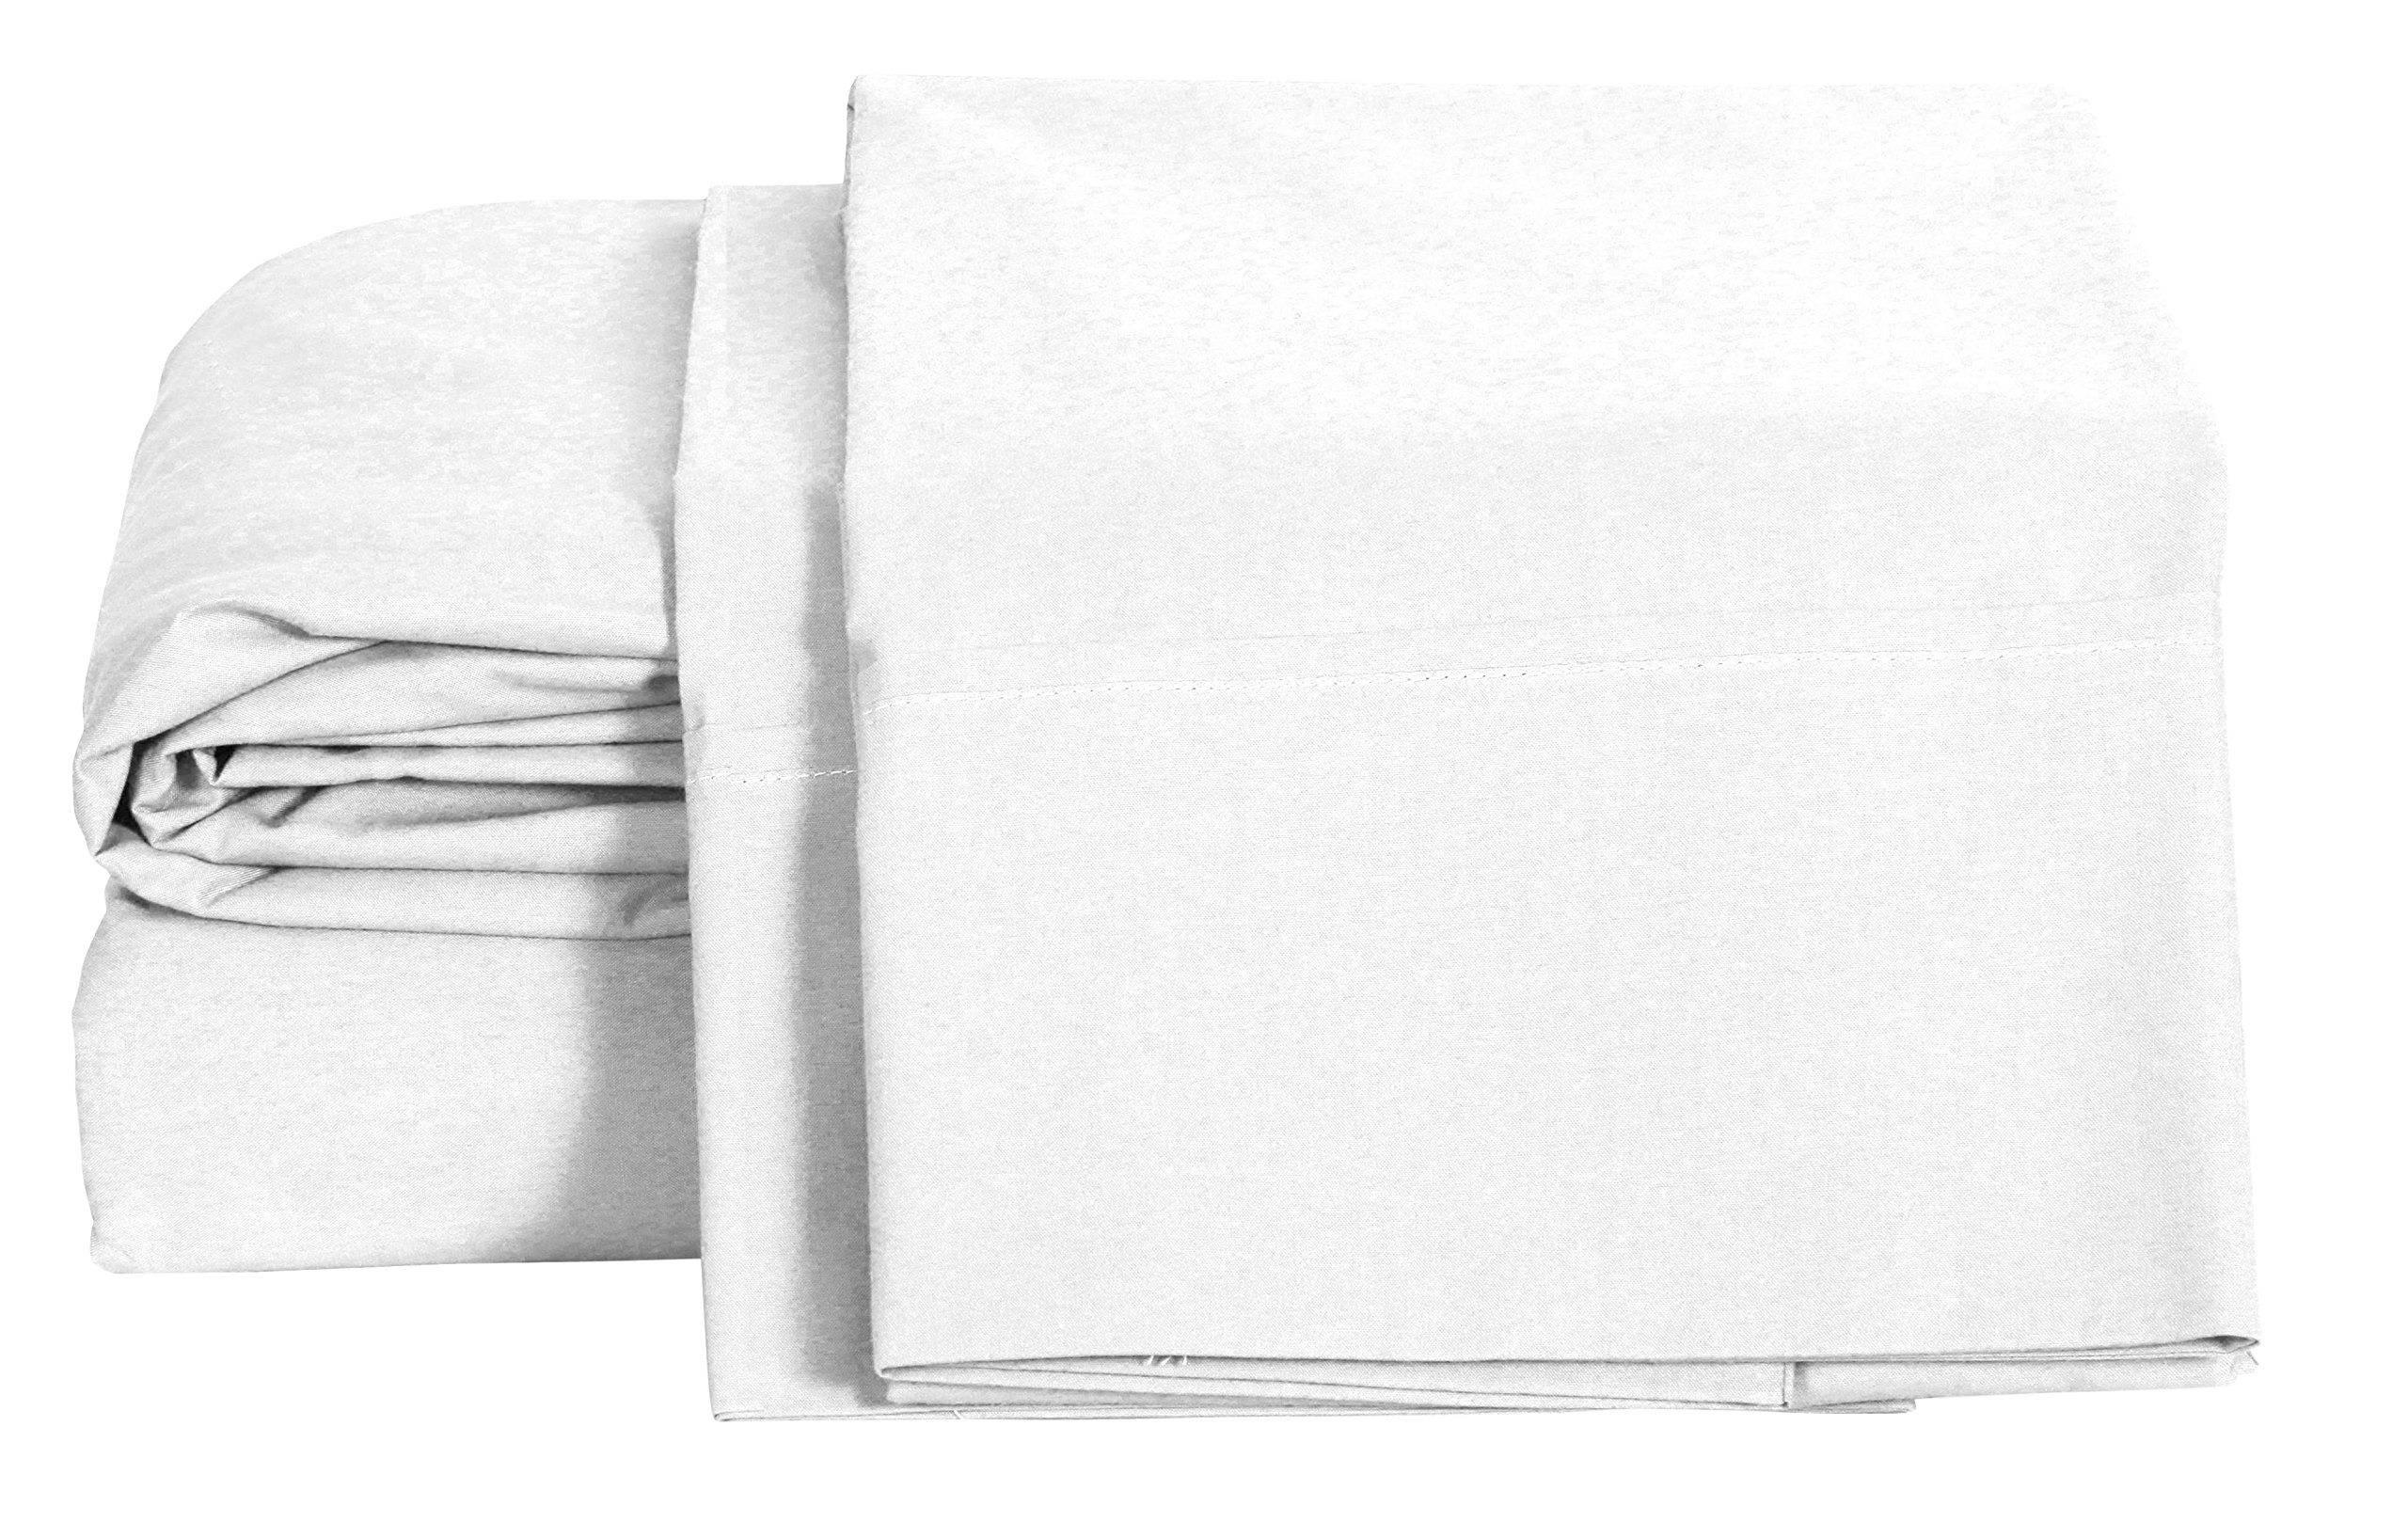 100% Cotton Percale Sheets King Size, White, Deep Pocket, 4 Piece - 1 Flat, 1 Deep Pocket Fitted Sheet and 2 Pillowcases, Crisp and Strong Bed Linen